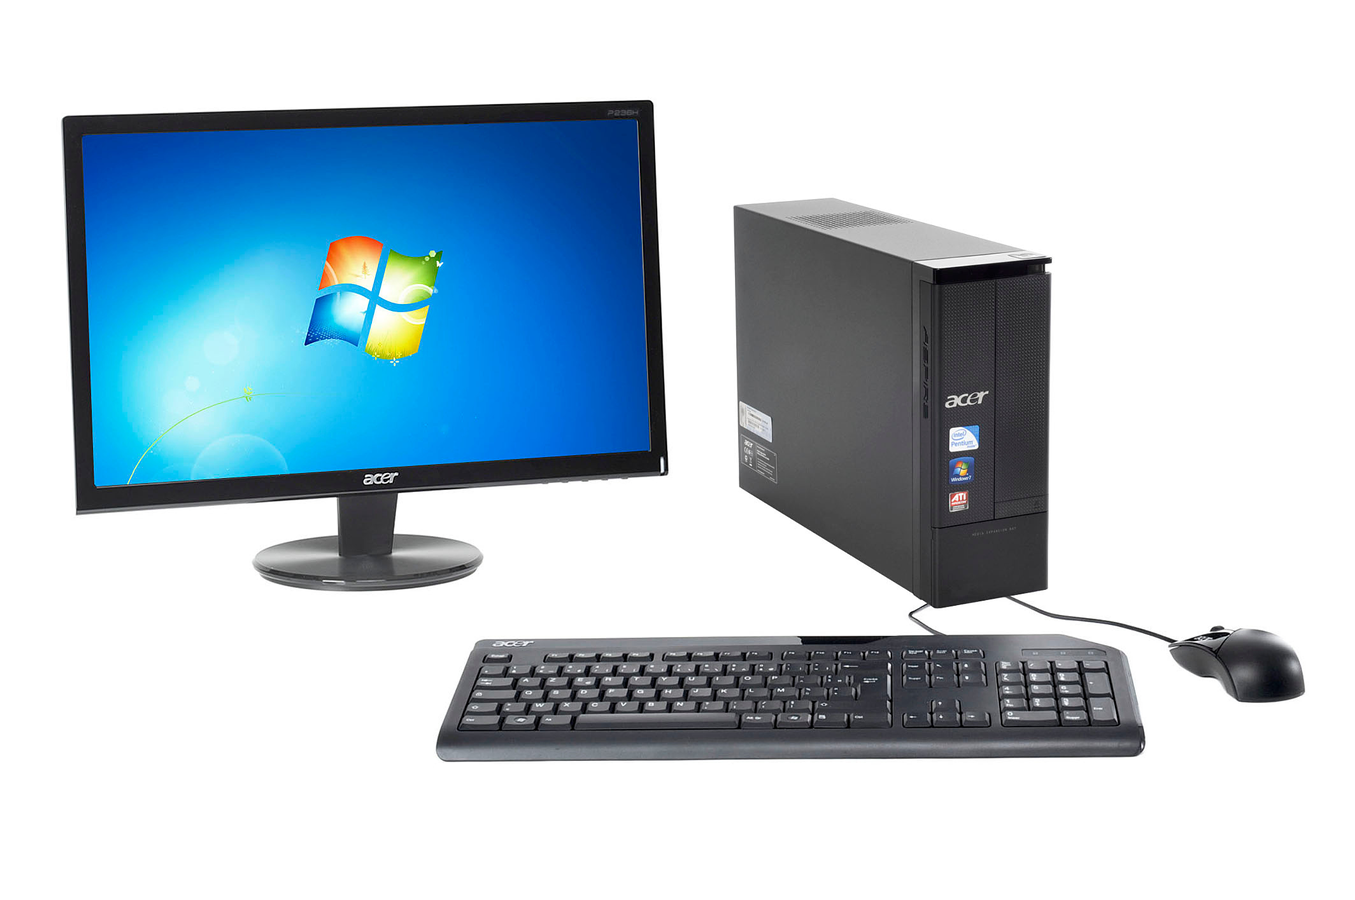 Pc de bureau acer aspire x3910 048 23 aspirex3910 048ob23 3338193 darty - Ordinateur de bureau darty ...